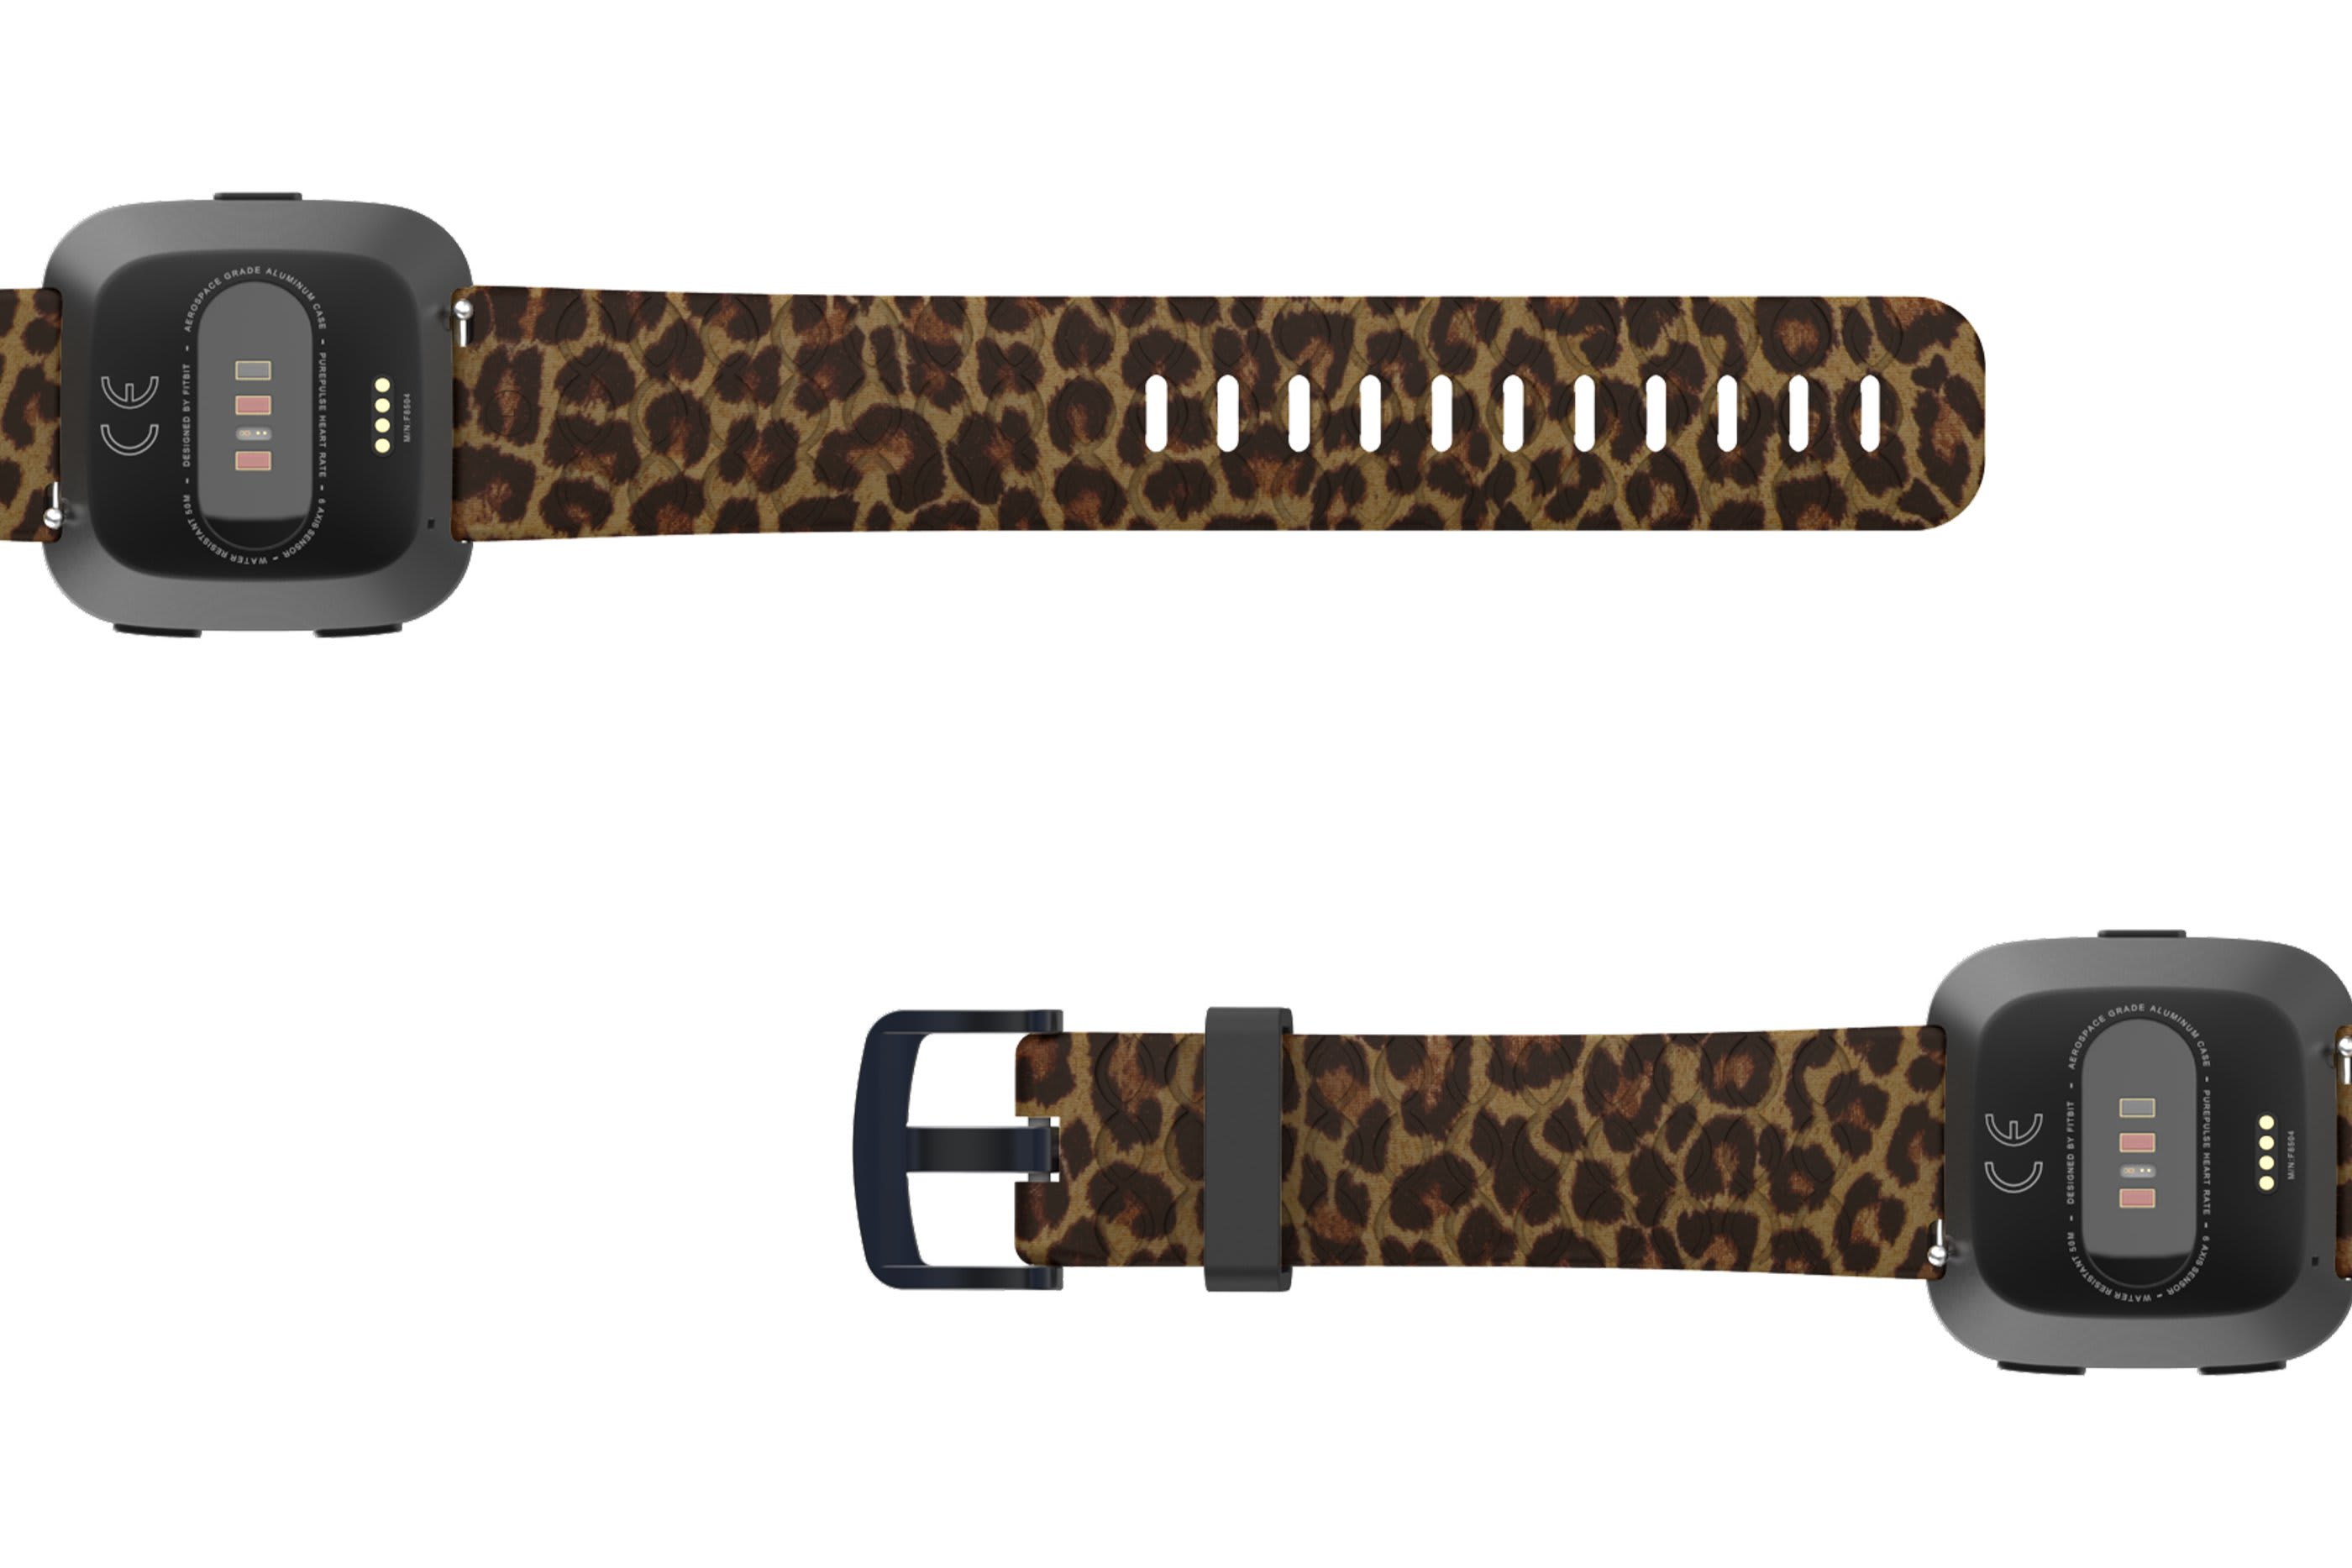 Leopard Fitbit Versa   watch band with gray hardware viewed bottom up